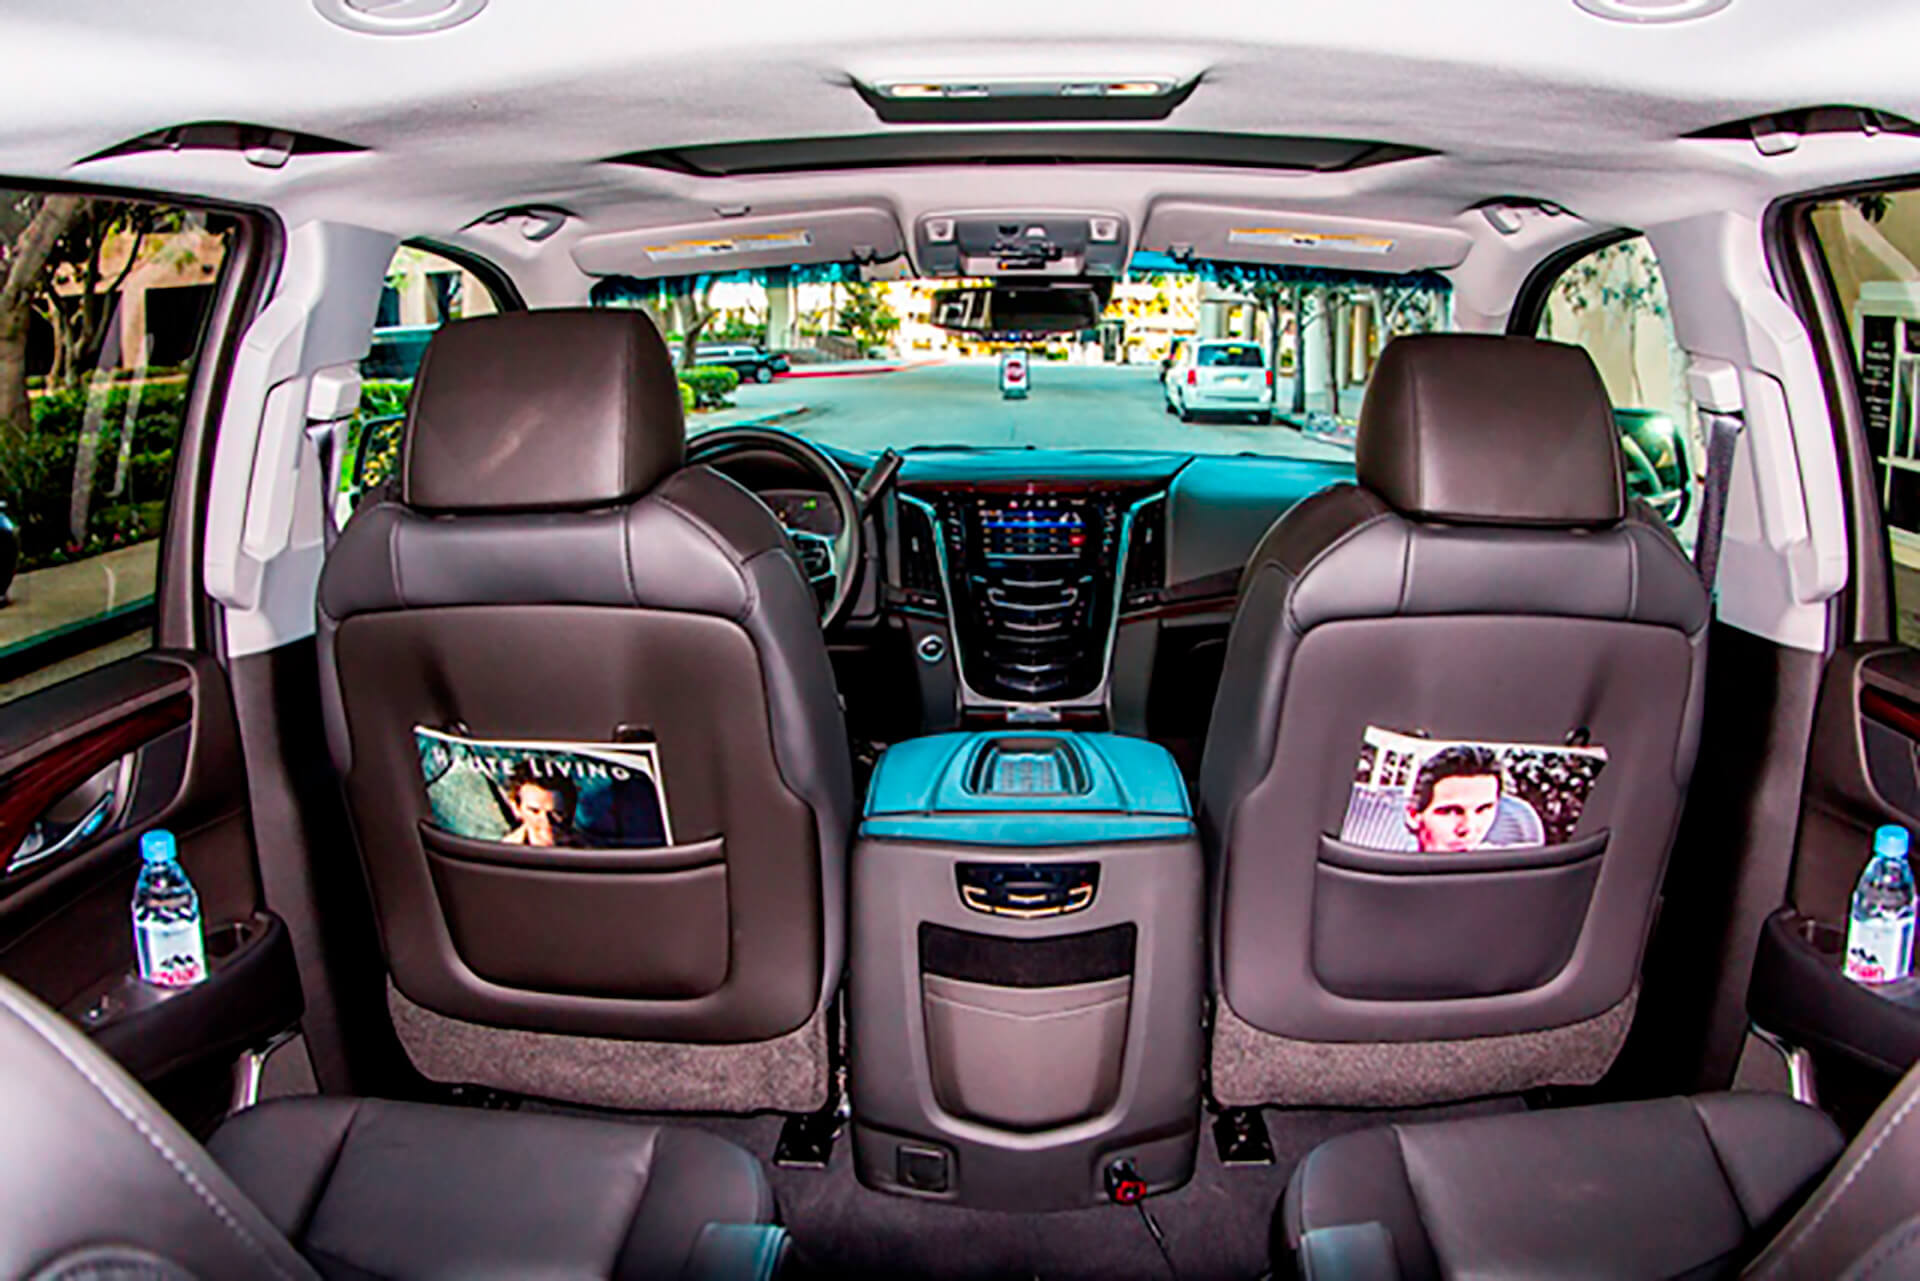 cadillac escalade interior wide